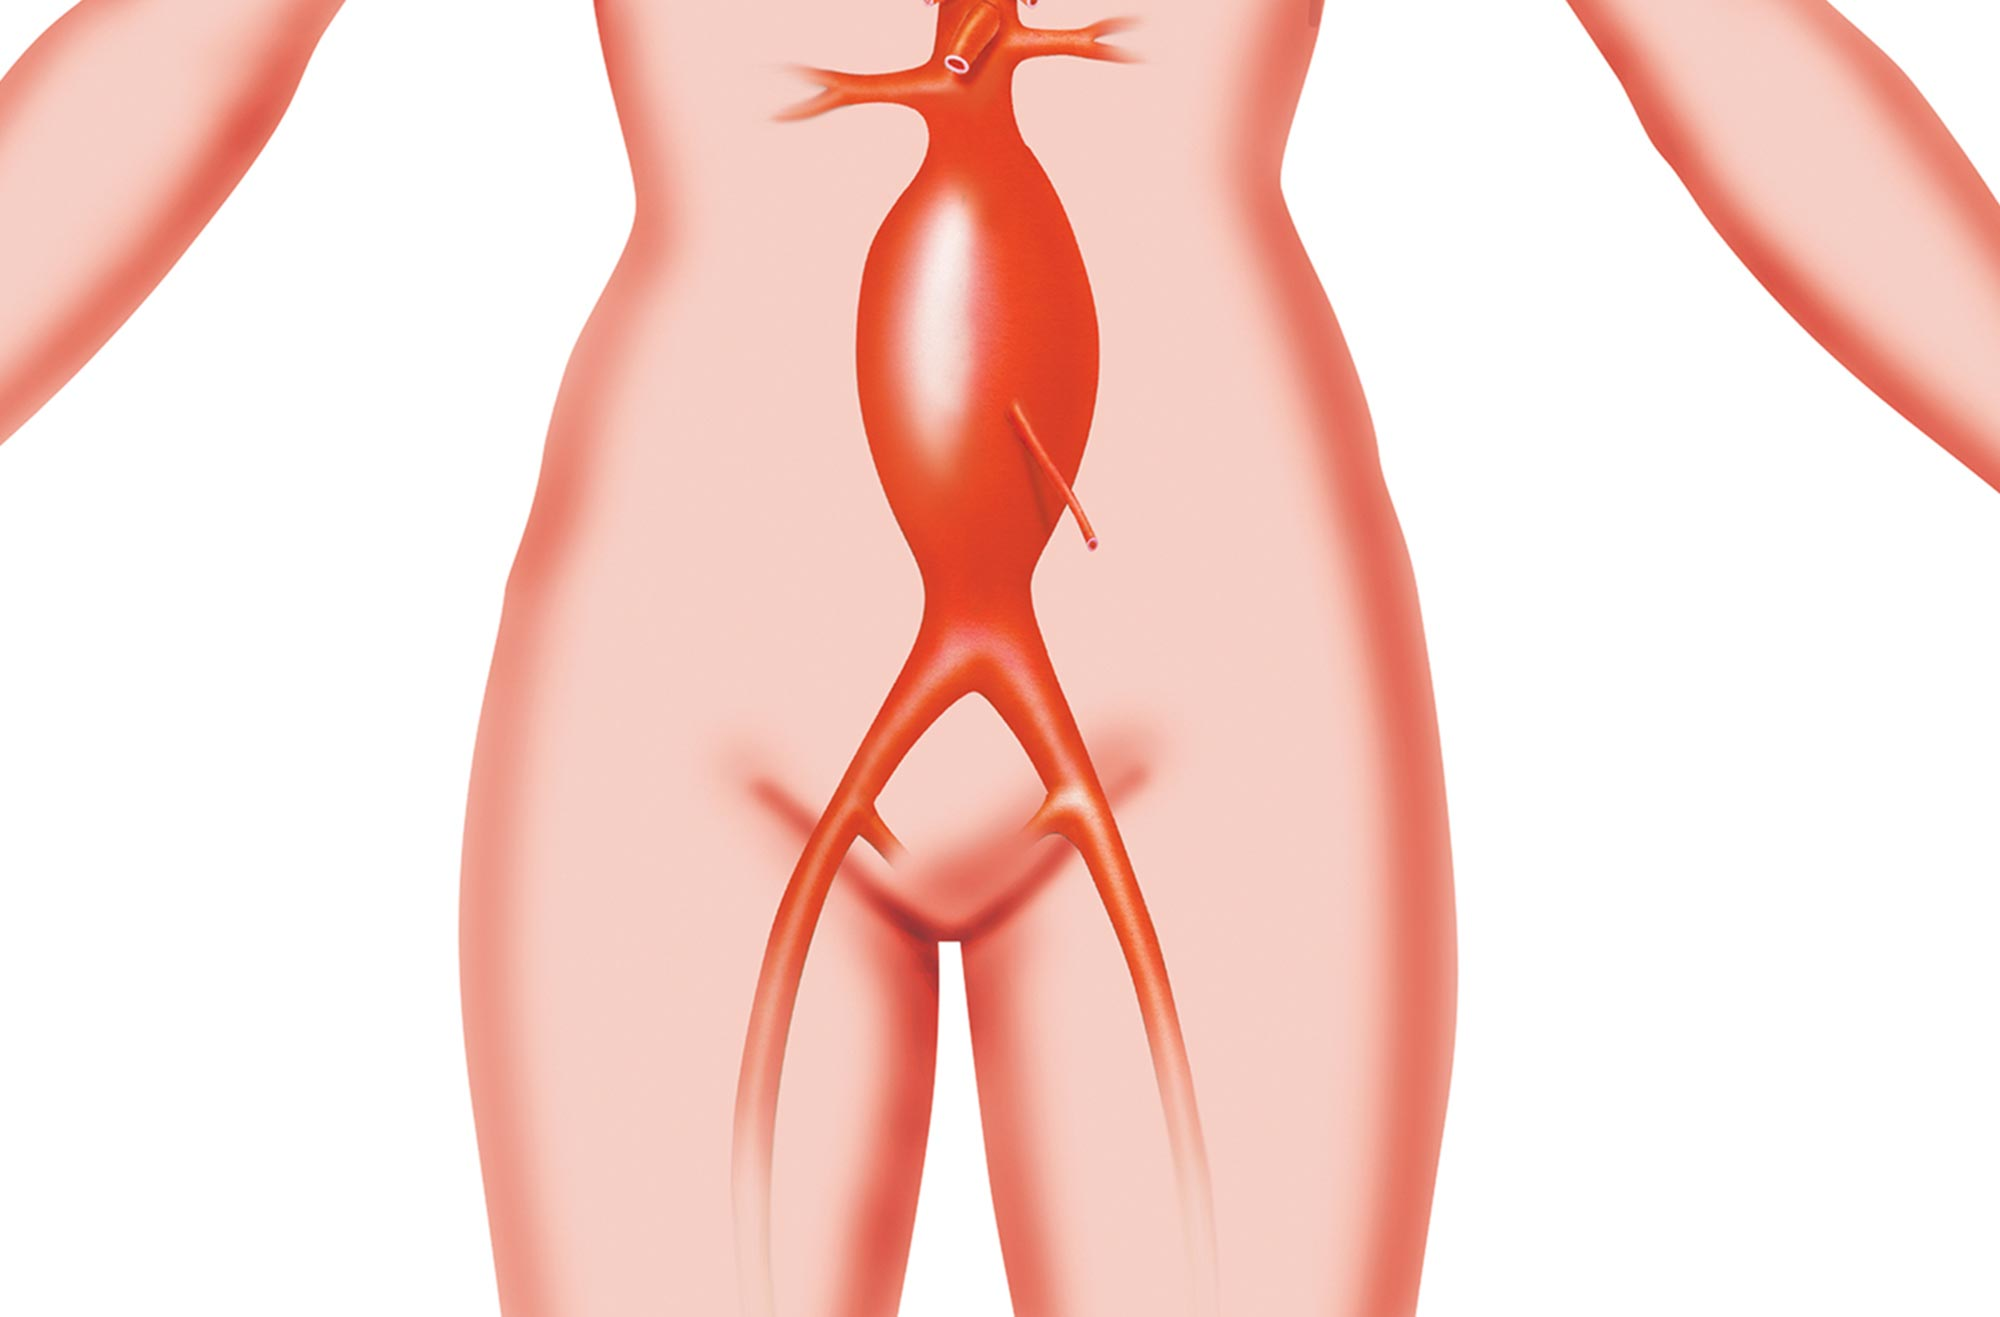 Illustration Of An Abdominal Aortic Aneurysm